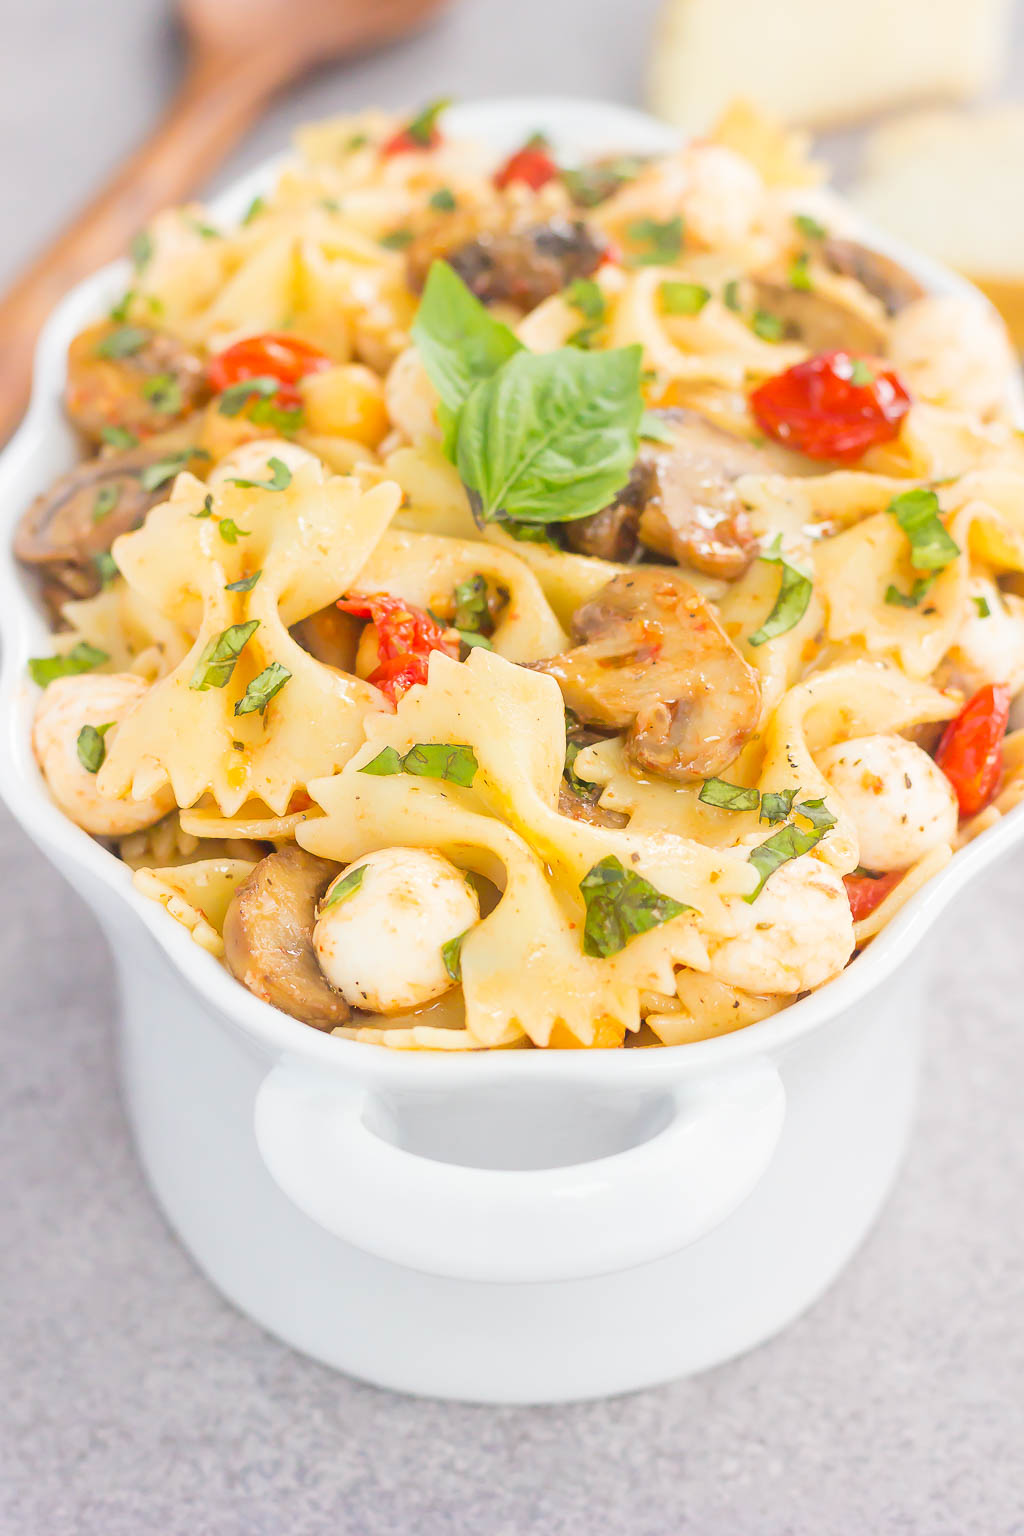 This Roasted Mushroom and Tomato Pasta Salad is a flavorful dish that comes together in minutes. Fresh mushrooms and cherry tomatoes are roasted until tender and then tossed with chickpeas, mozzarella and pasta in a light, white balsamic dressing. Bursting with flavor and perfect for a light lunch or dinner, you'll be making this pasta salad all year long!